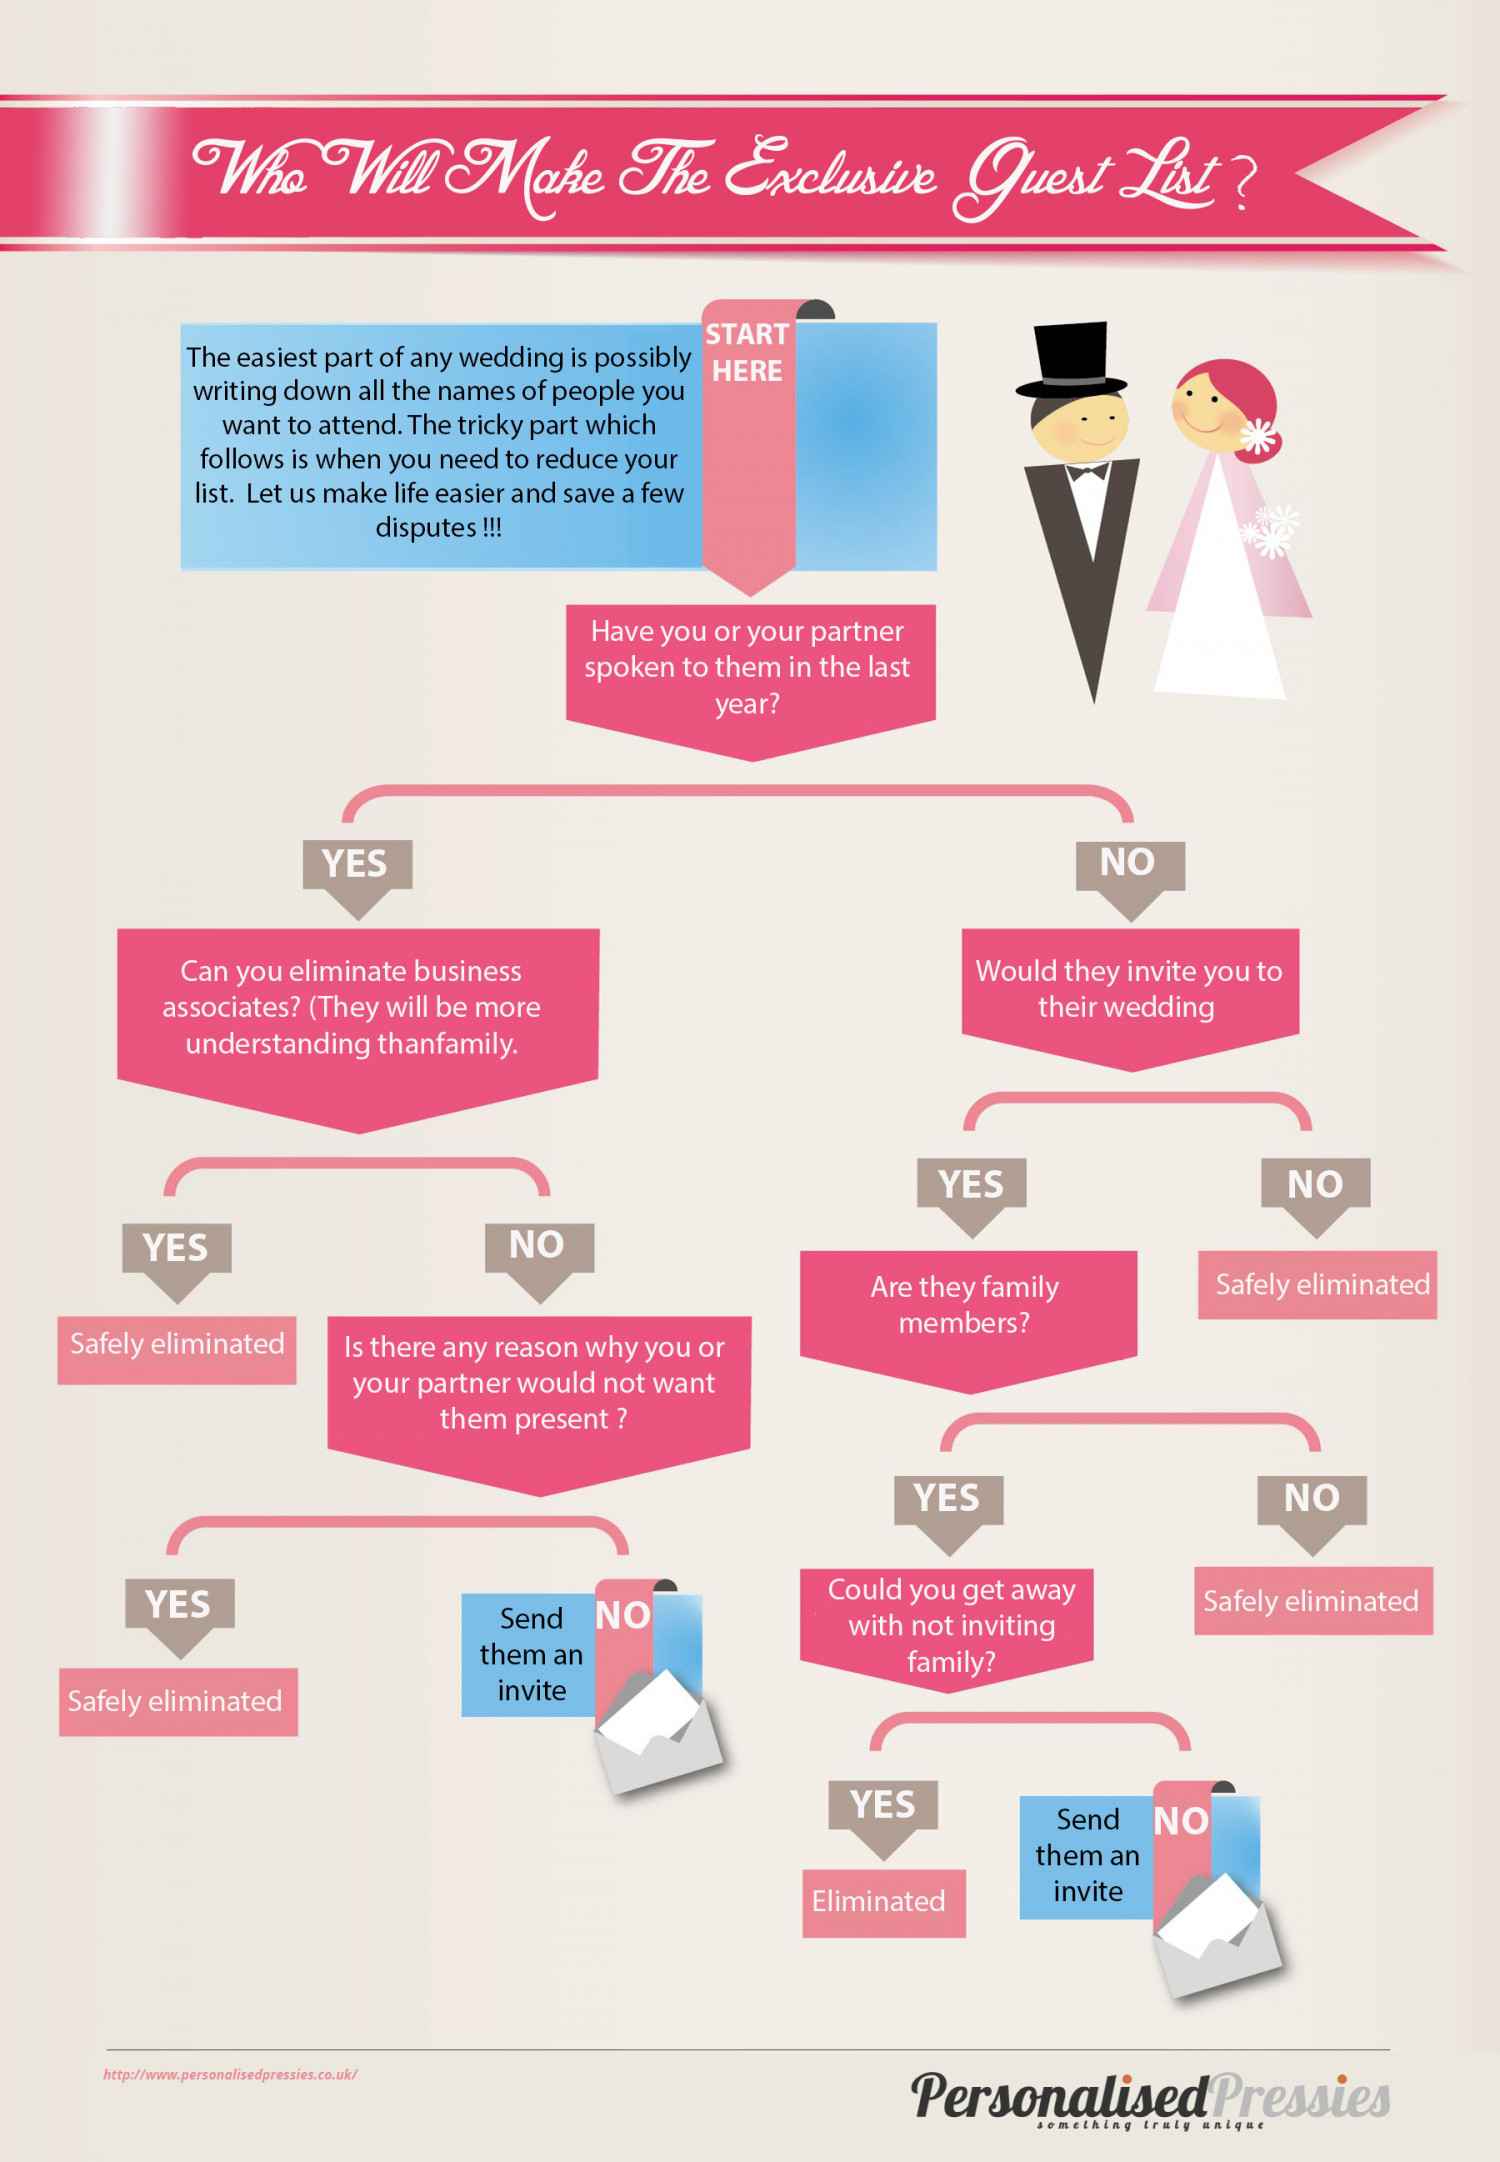 Who Will Make The Wedding Guest List? Infographic